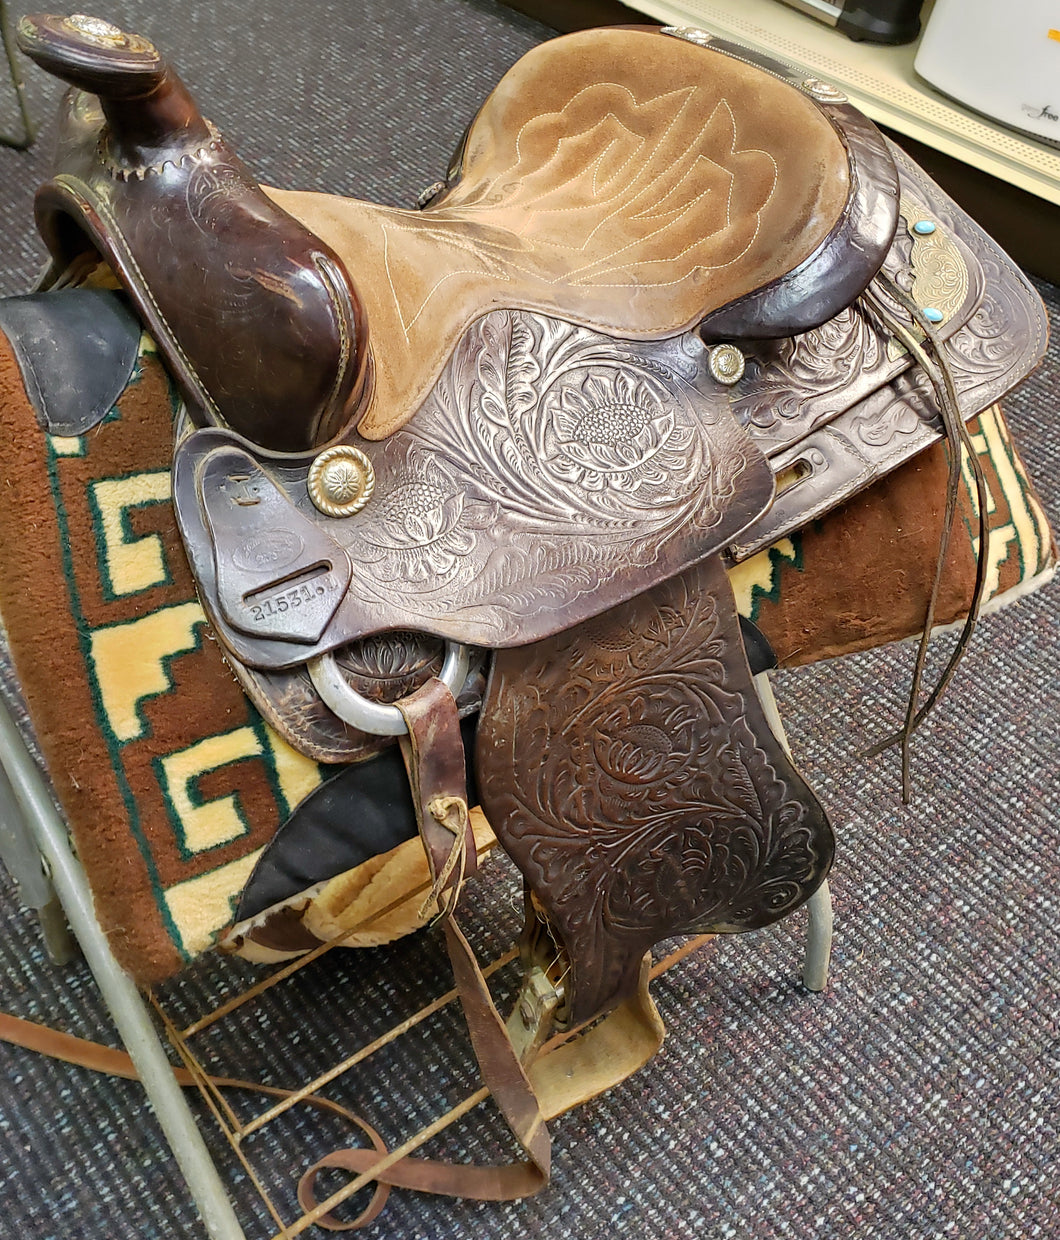 Action Company 21531.1 W926 Texas Trail Horse Saddle